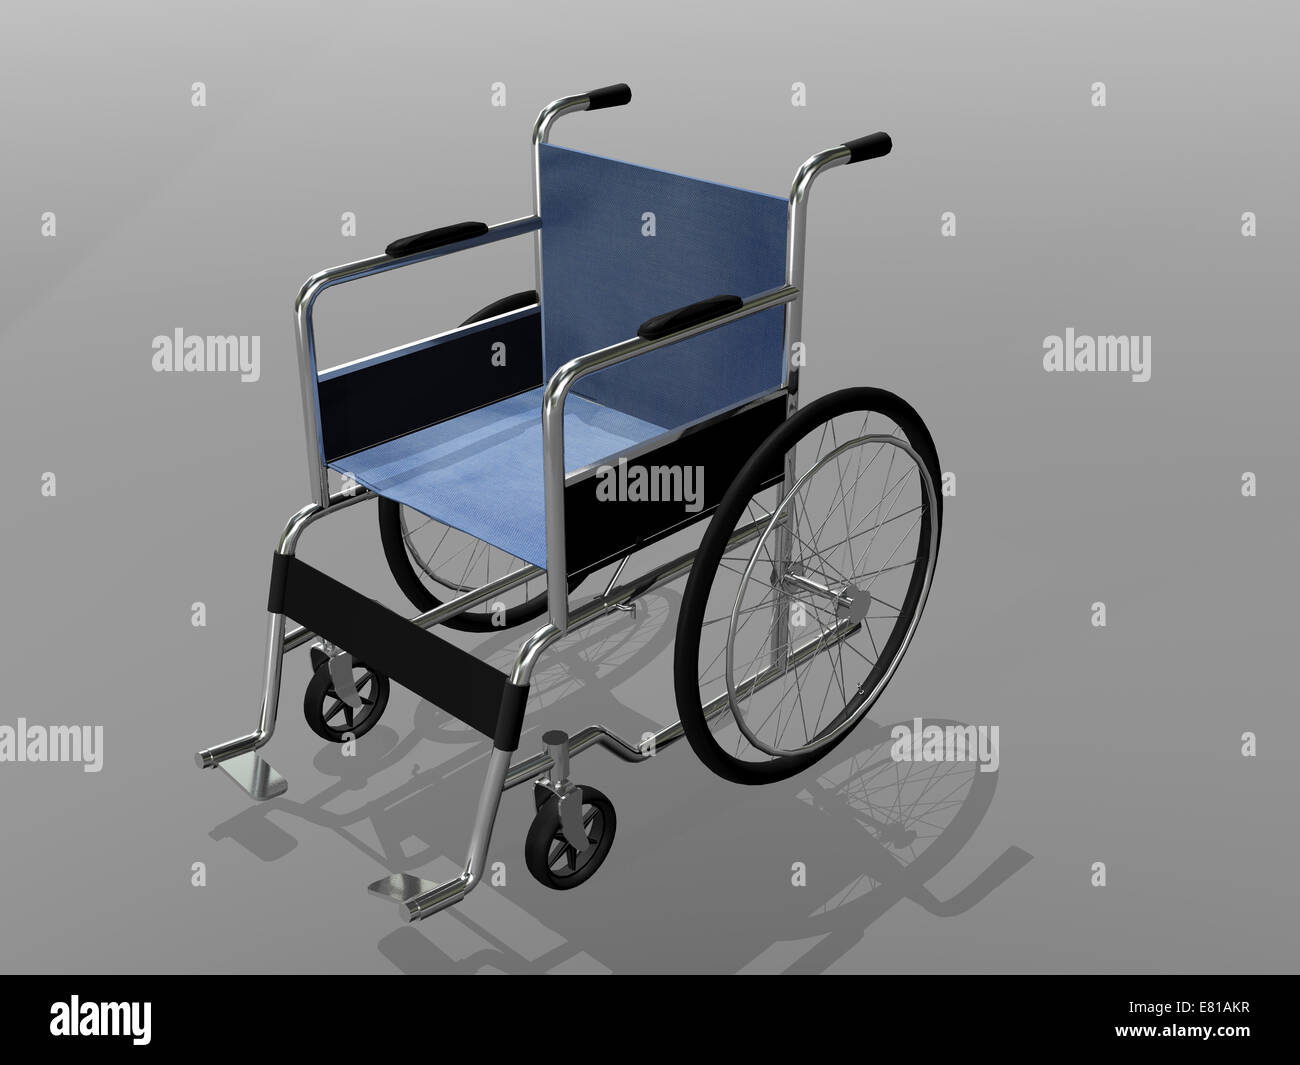 Wheelchair illustration. - Stock Image